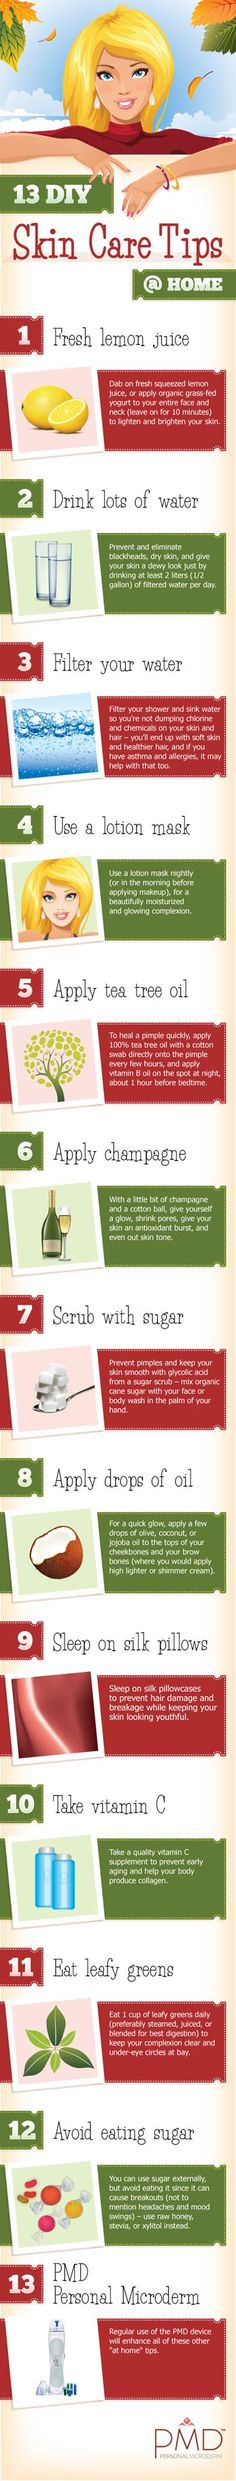 13 #DIY Skin Care Tips